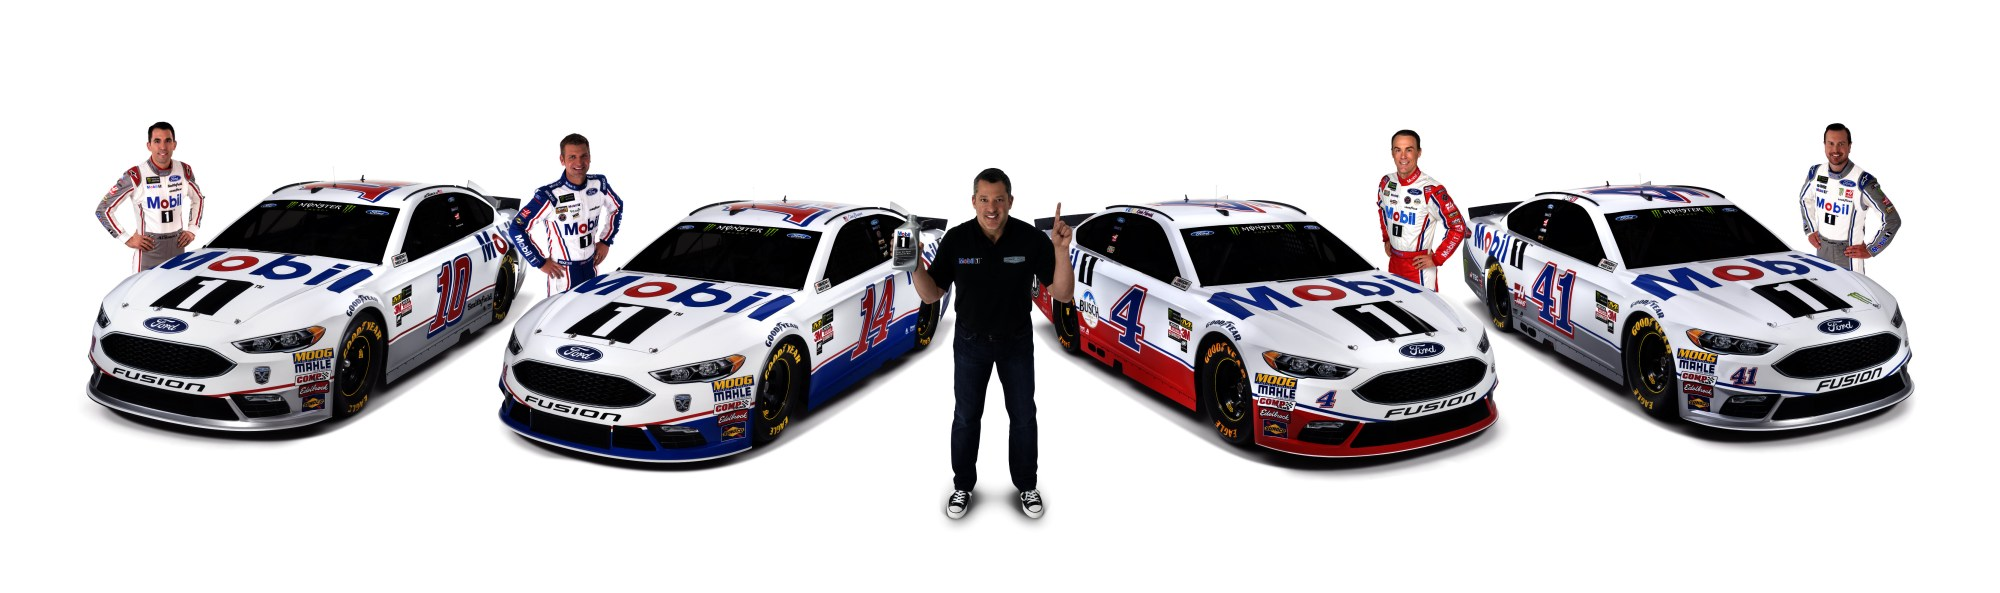 hight resolution of mobil 1tm and stewart haas racing gear up for the 2018 nascar season full size